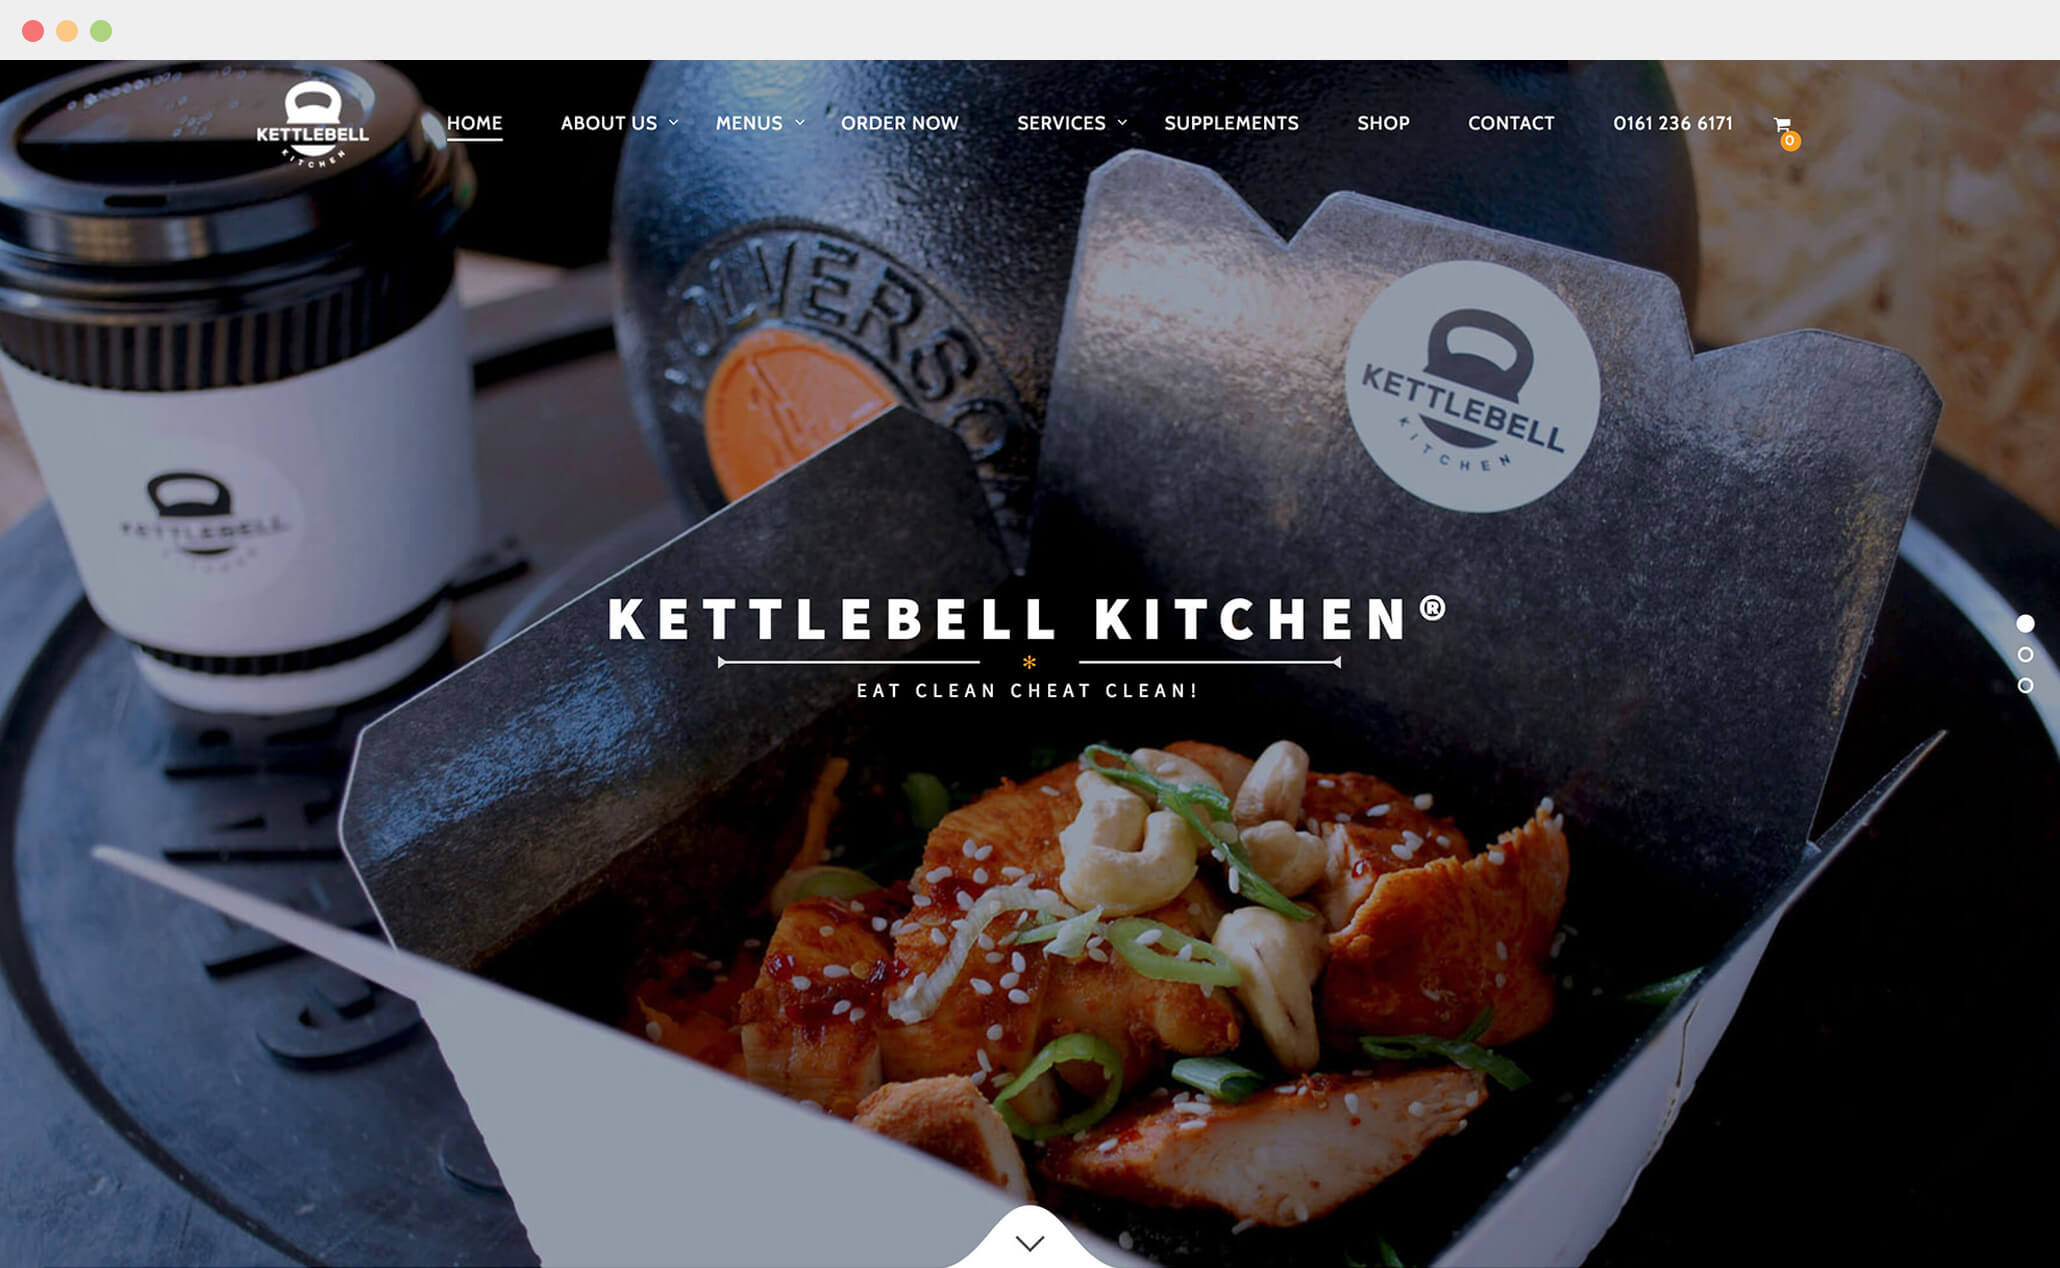 Kettlebell Kitchen website